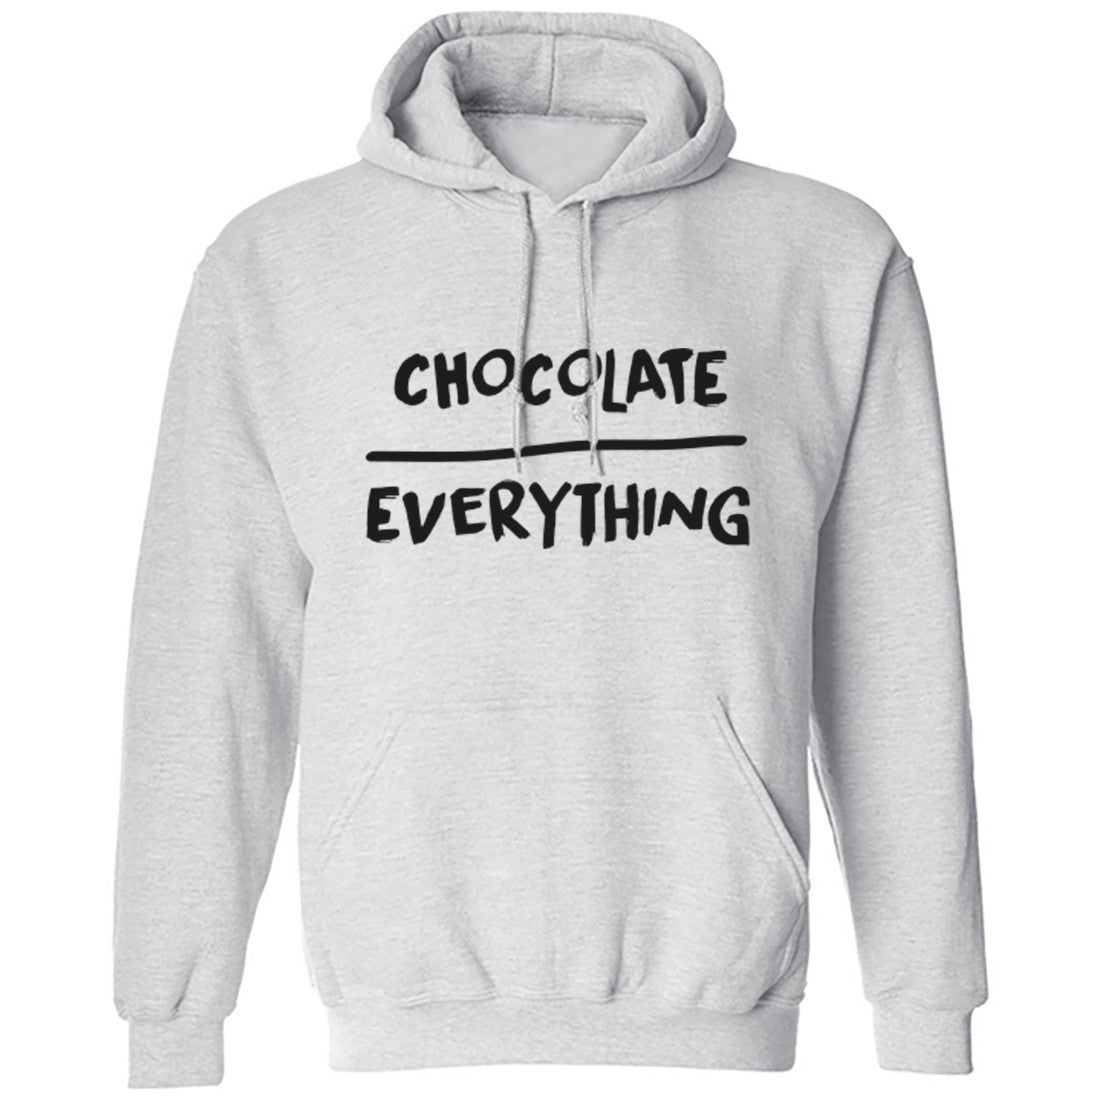 Chocolate Over Everything Hoodie K0121 - Illustrated Identity Ltd.